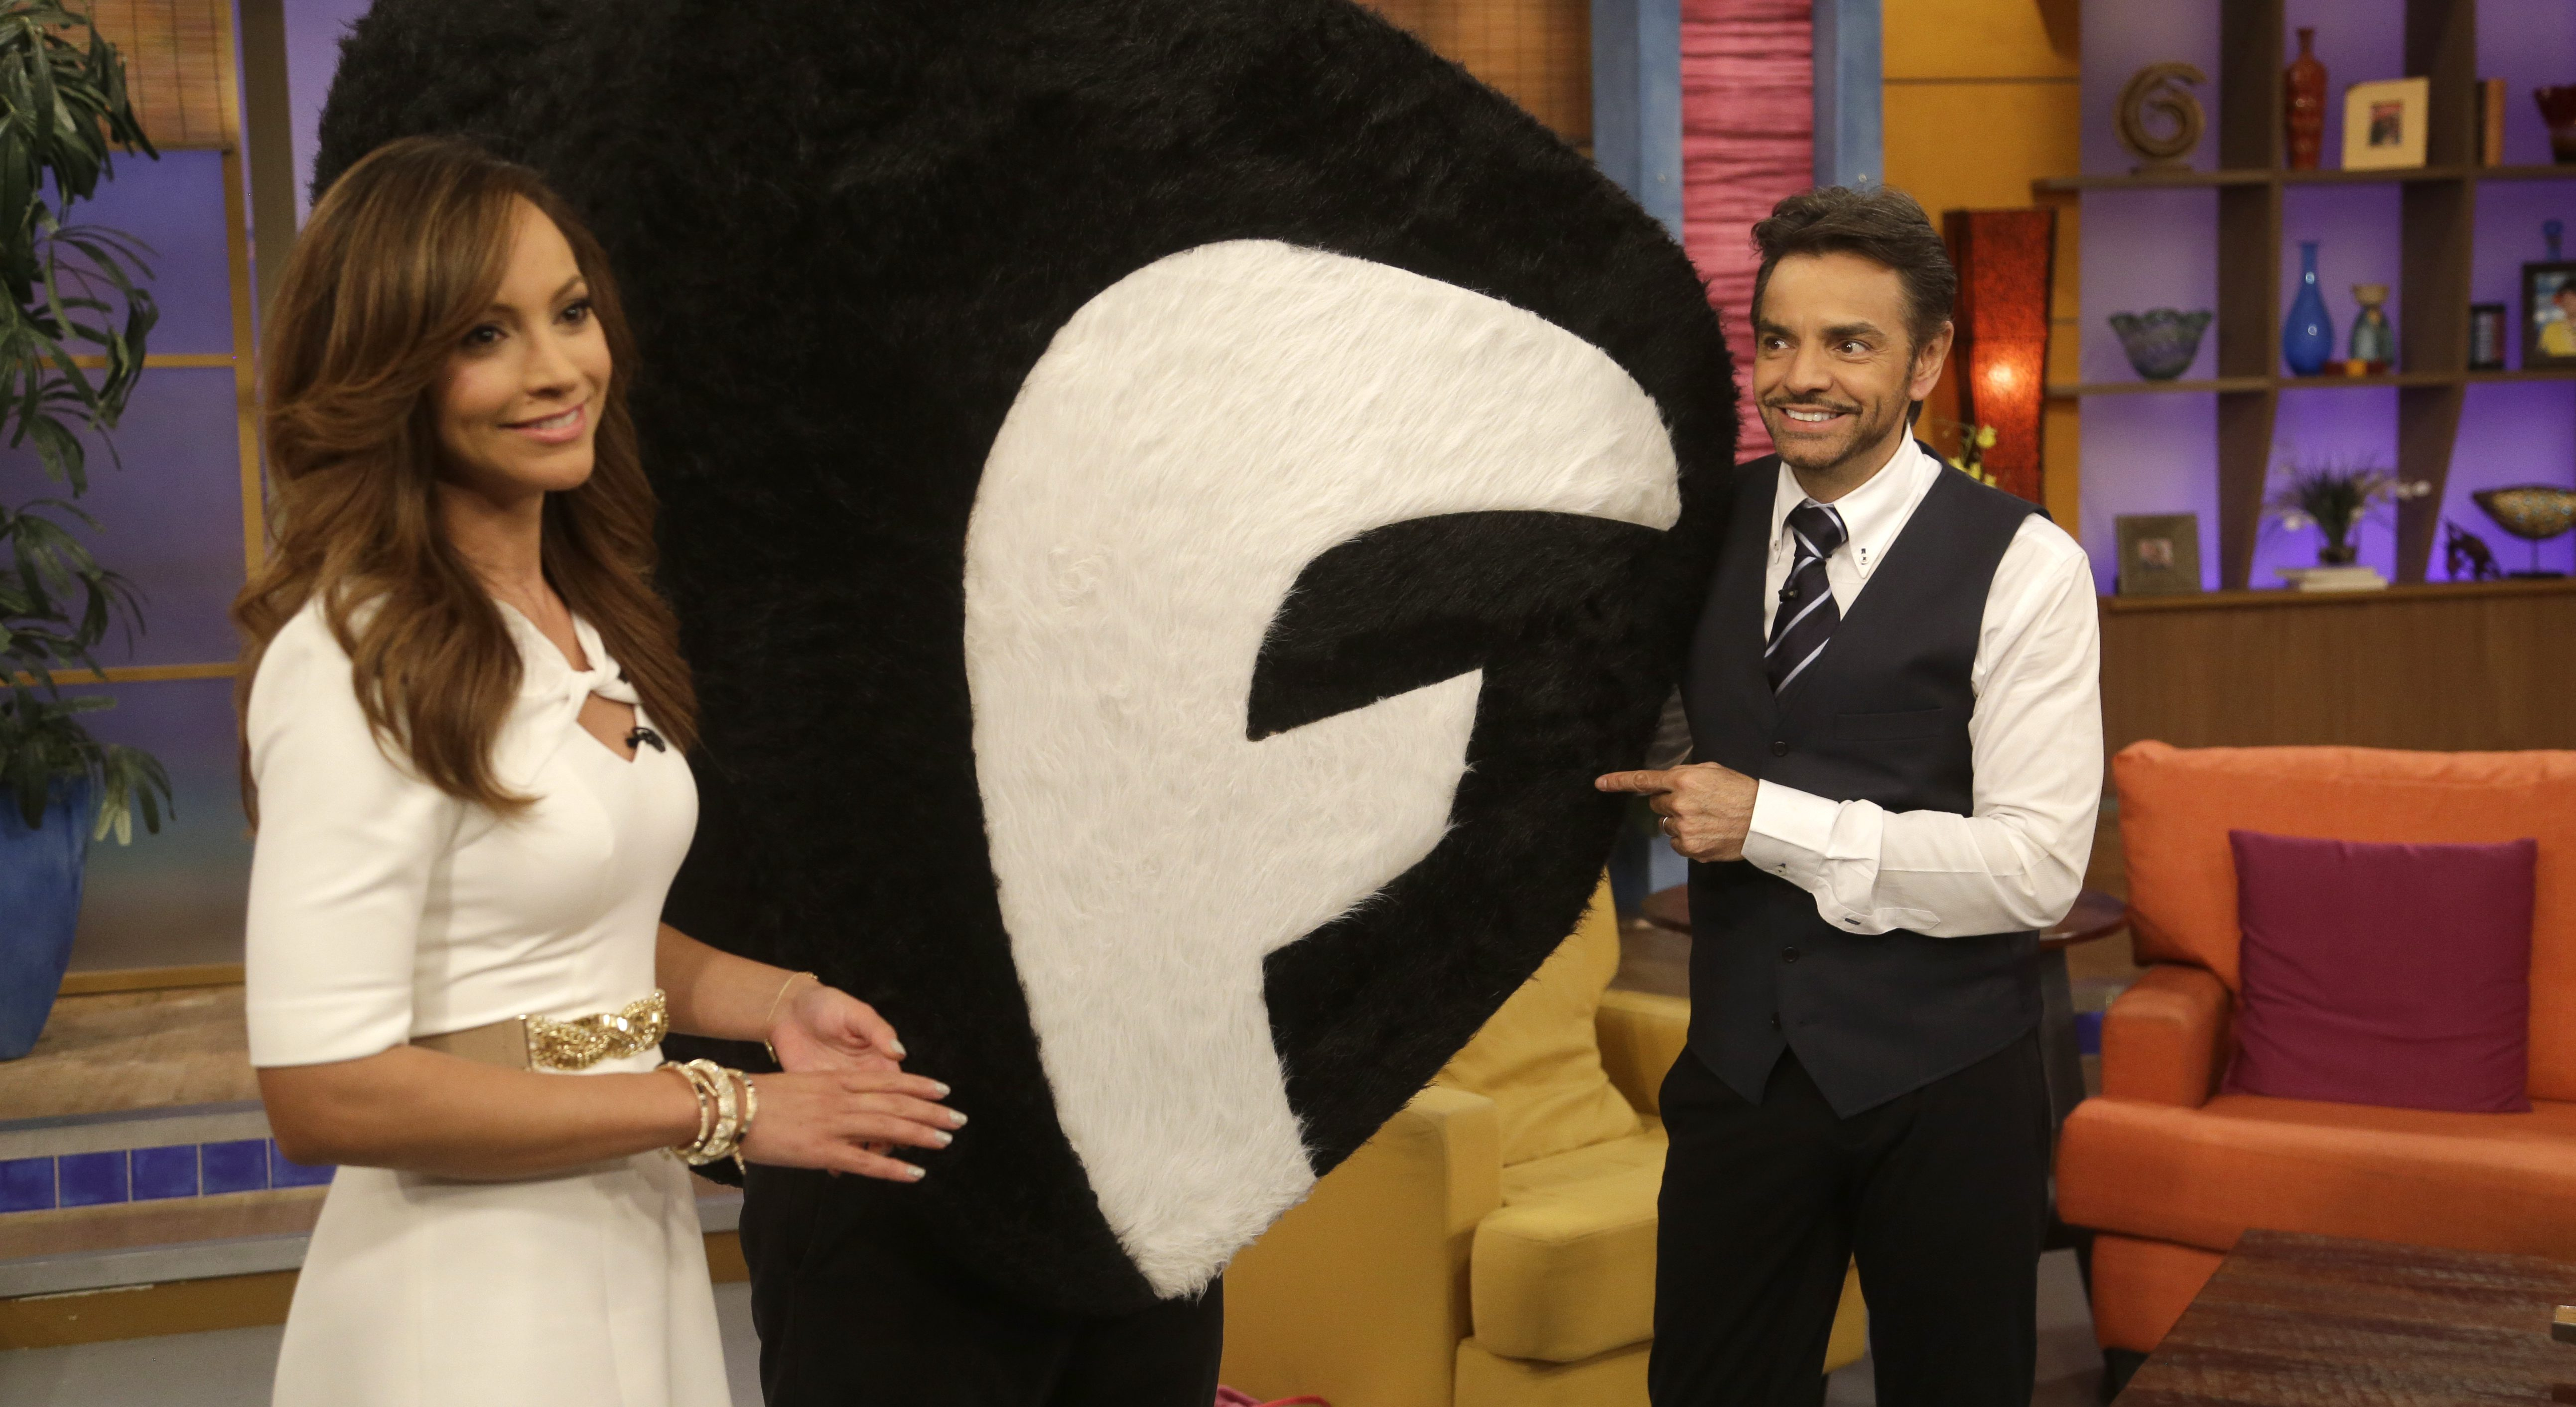 """Mexican actor Eugenio Derbez, right, and Satcha Pretto, left, pose with the new Fusion network mascot on the Univision network morning show, """"Despierta America"""" (""""Wake Up America,"""") Monday, Oct. 28, 2013 in Doral, Fla. (AP Photo/Wilfredo Lee)"""